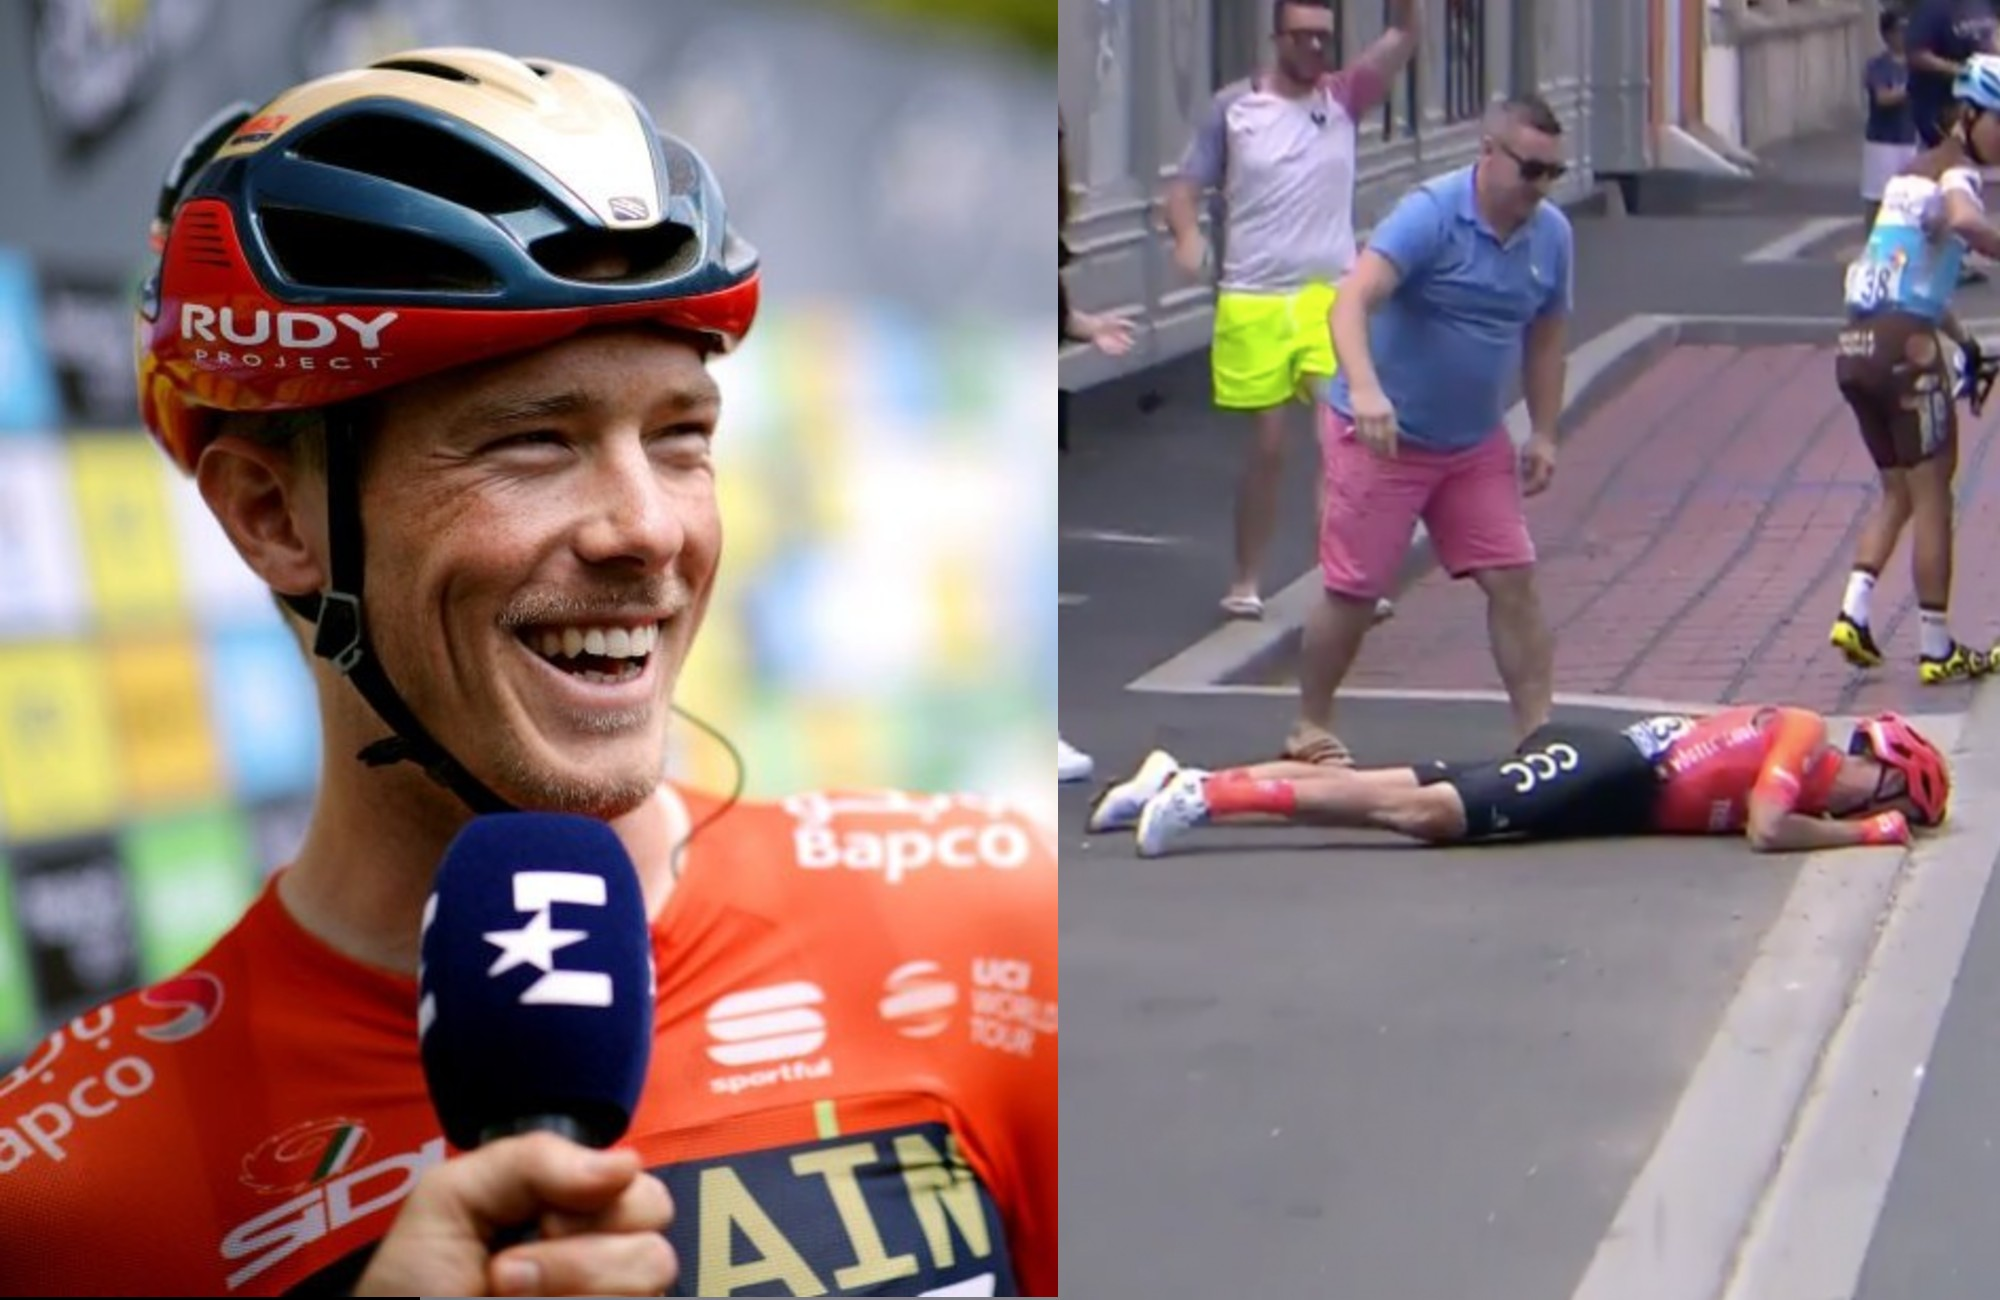 Top 10 cycling news stories of 2019